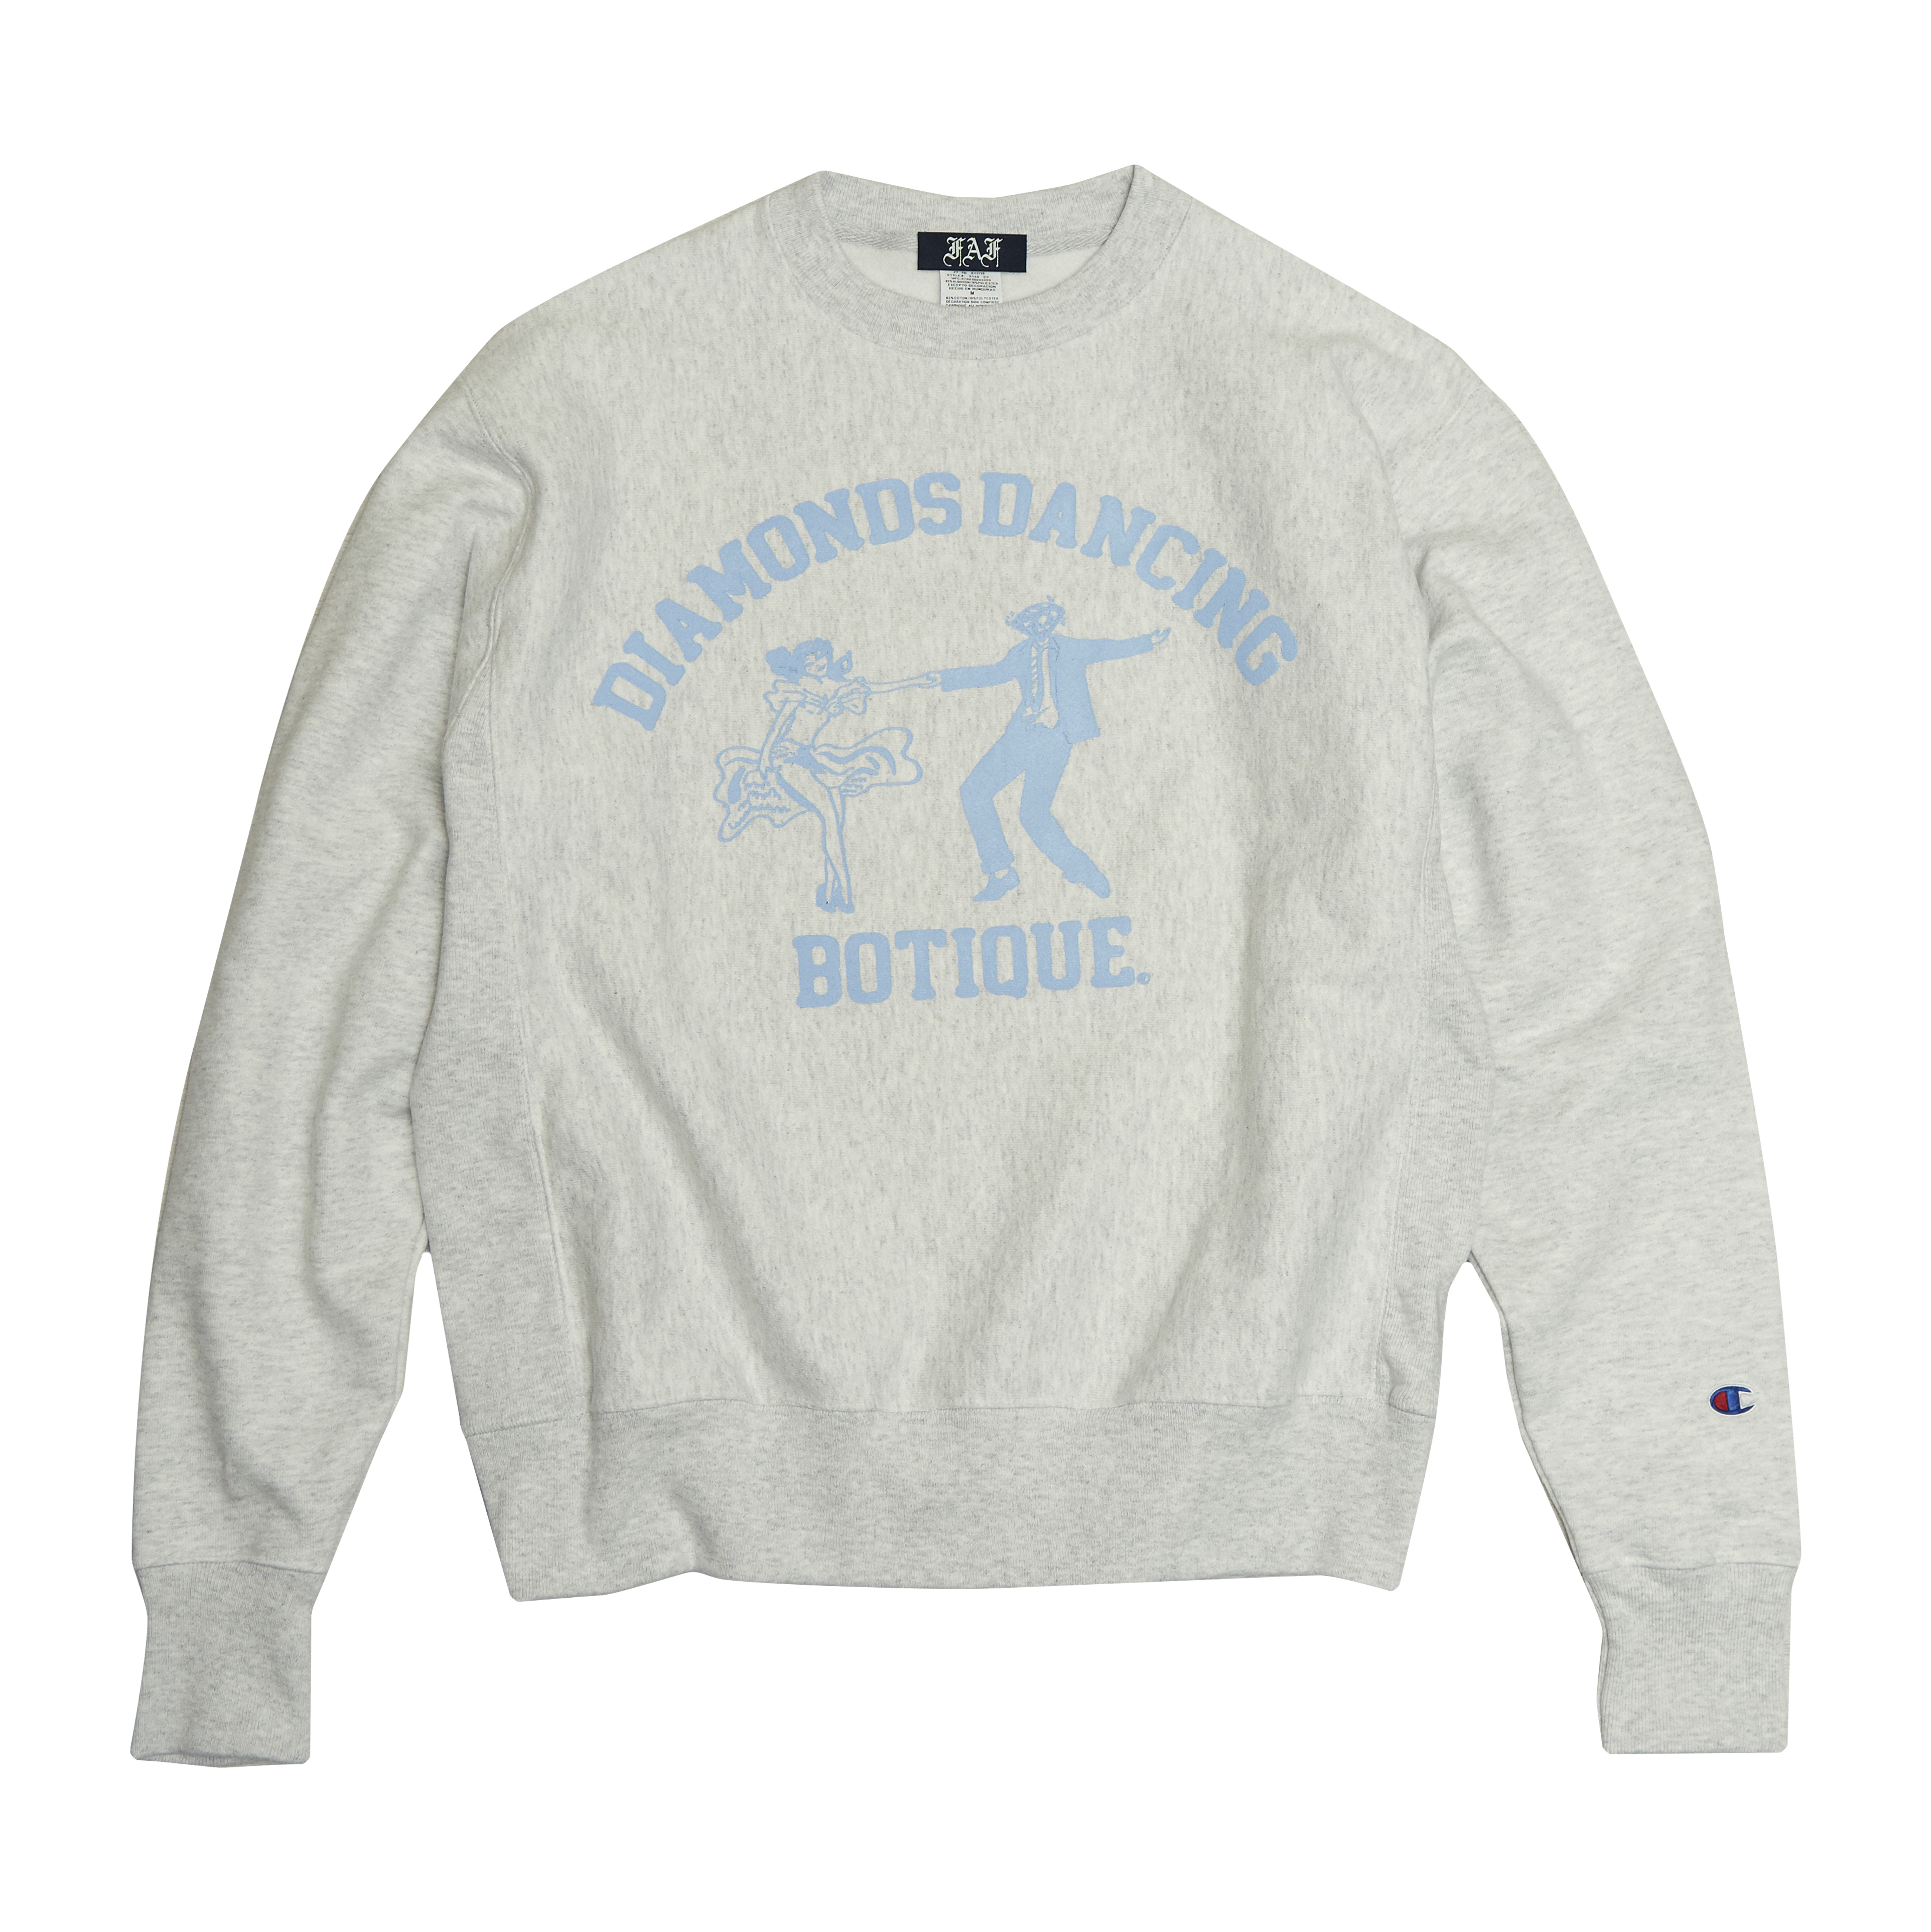 DDB sweatshirt -gray- - 画像1